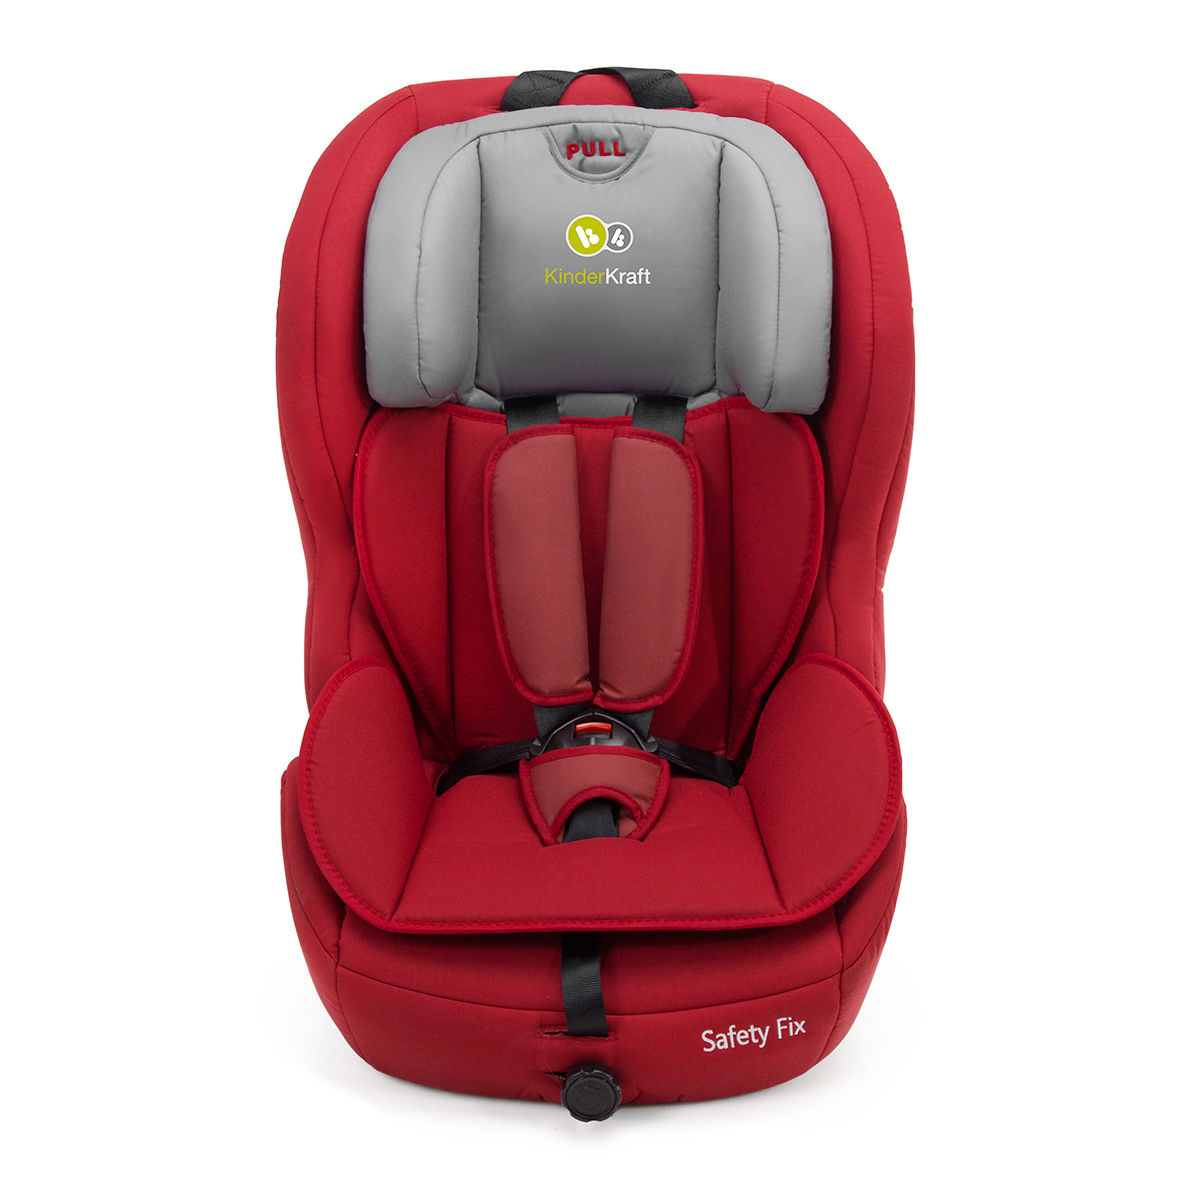 isofix autokindersitz autositz kinderkraft safetyfix rot 9. Black Bedroom Furniture Sets. Home Design Ideas